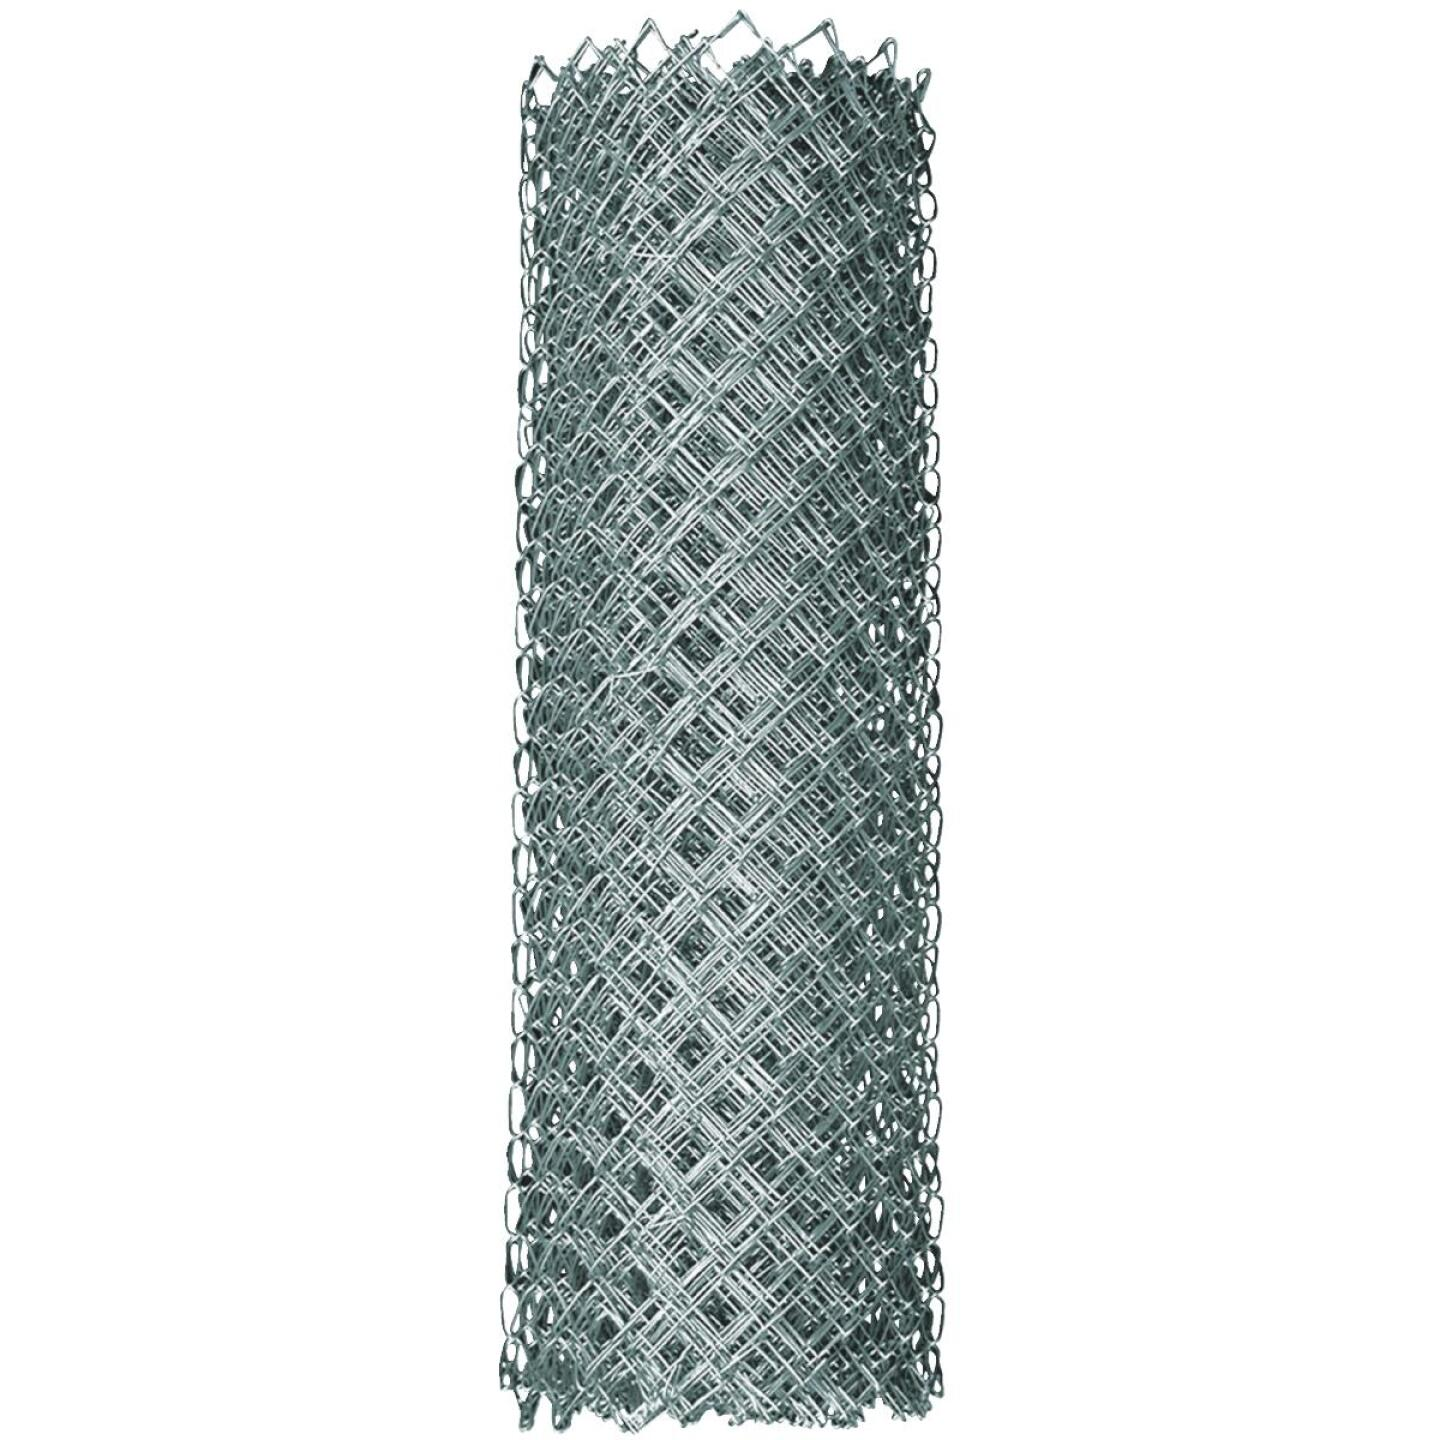 Midwest Air Tech 48 in. x 50 ft. 2-3/8 in. 11.5 ga Chain Link Fencing Image 1